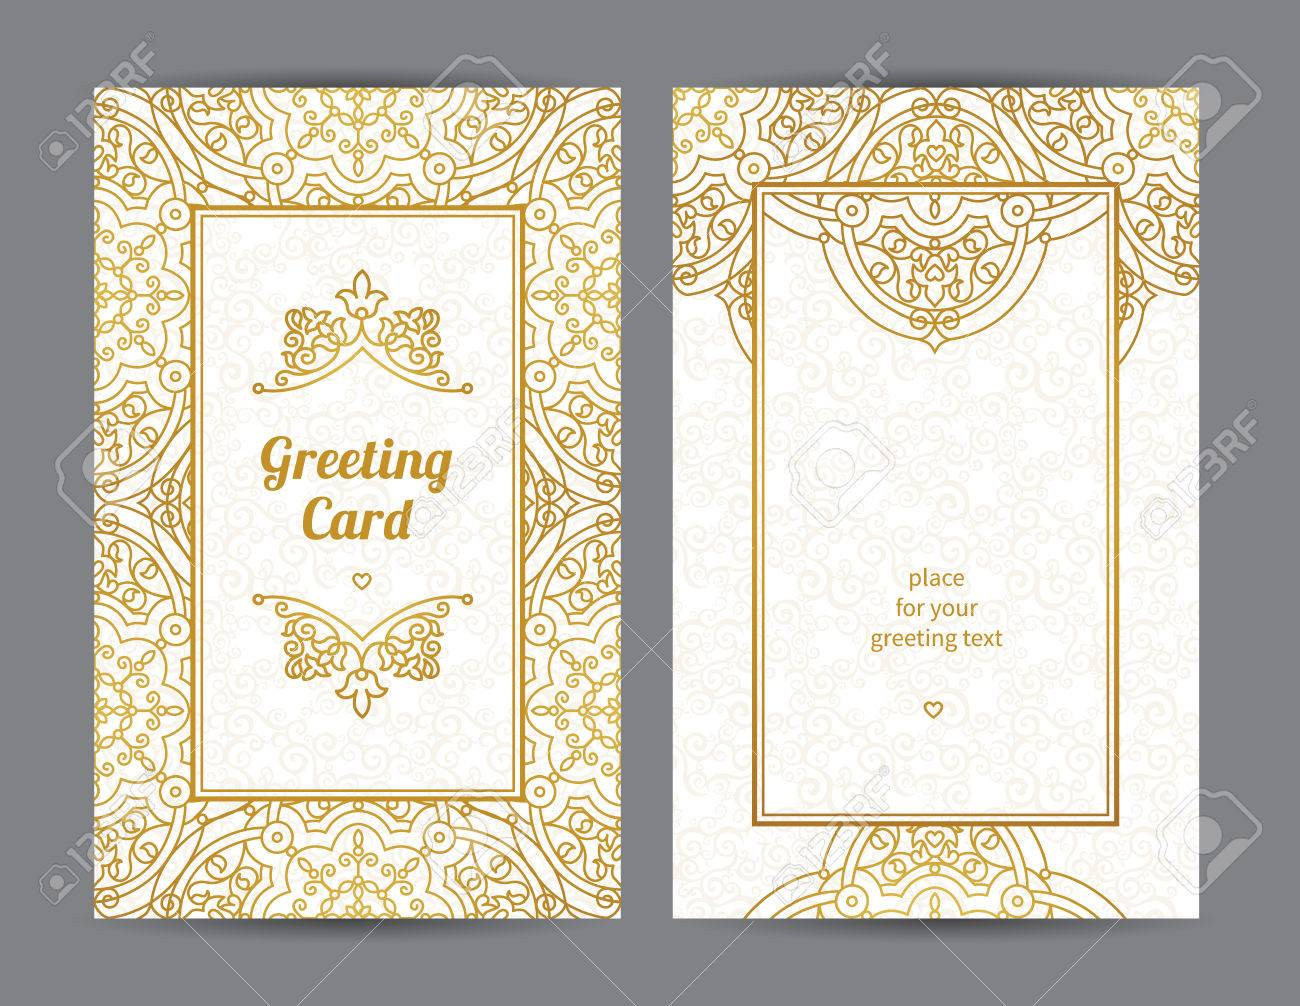 vintage ornate cards in eastern style golden decor with floral